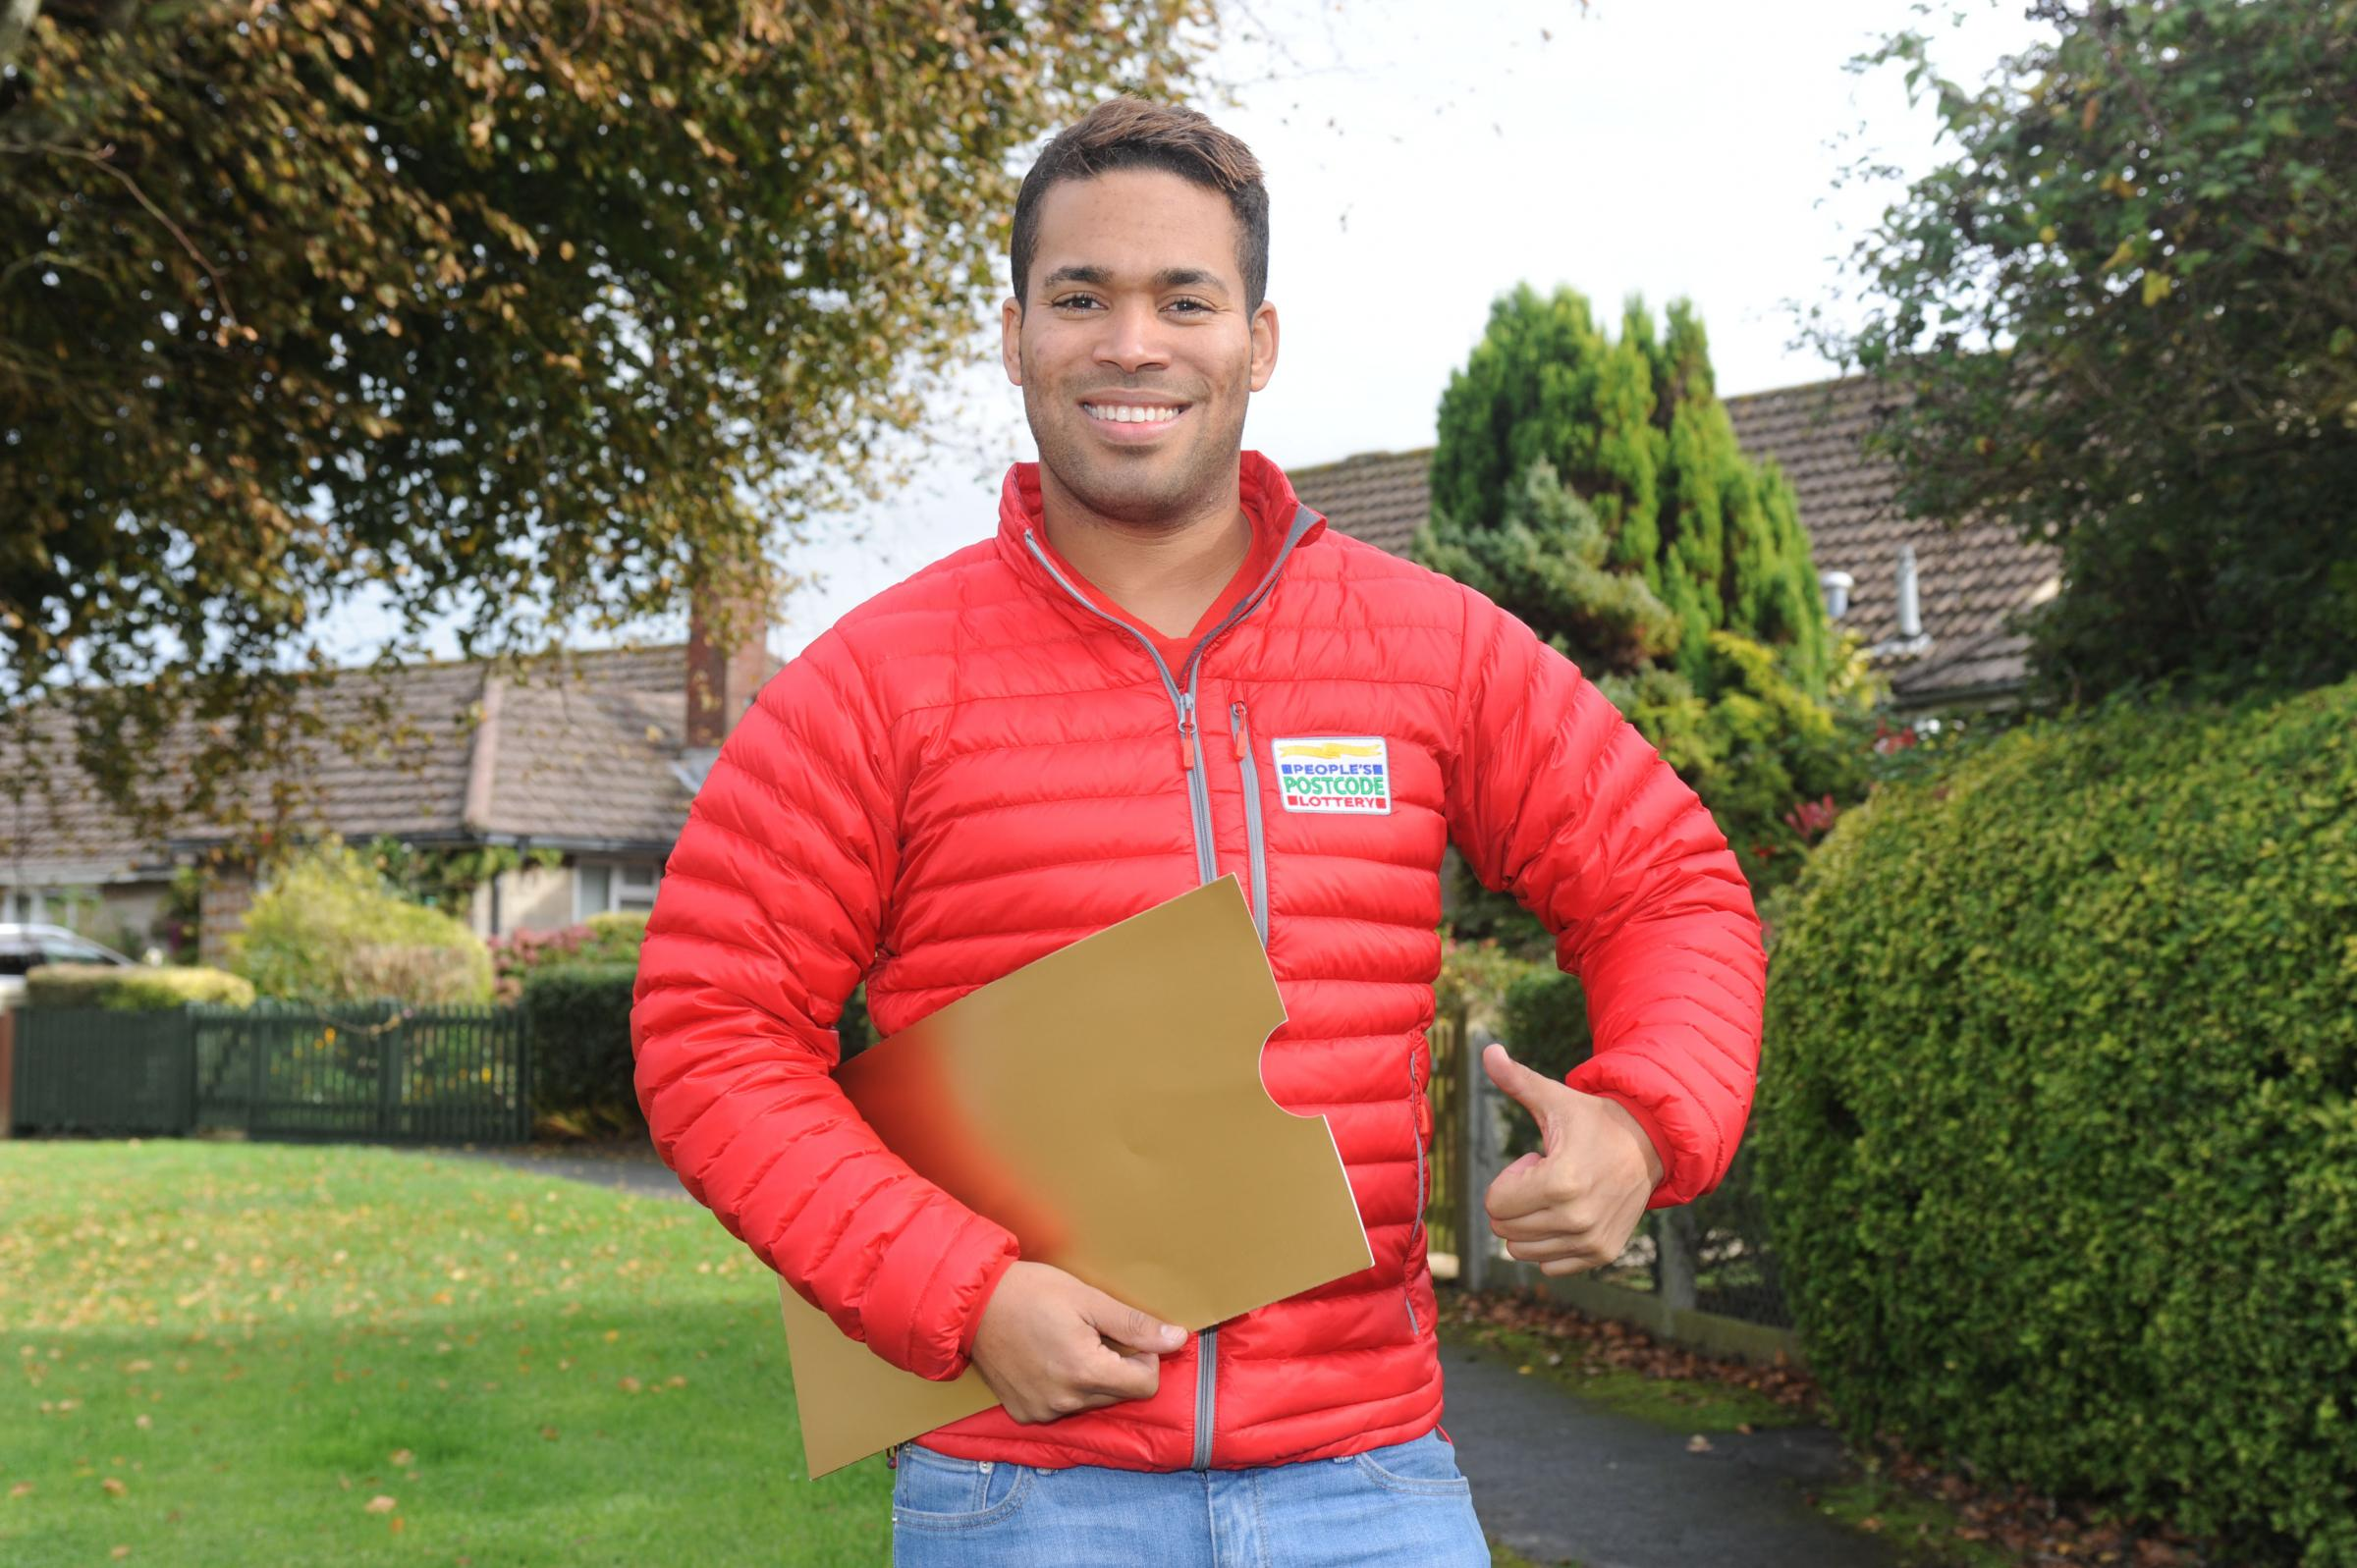 People's Postcode Lottery Ambassador, Danyl Johnson